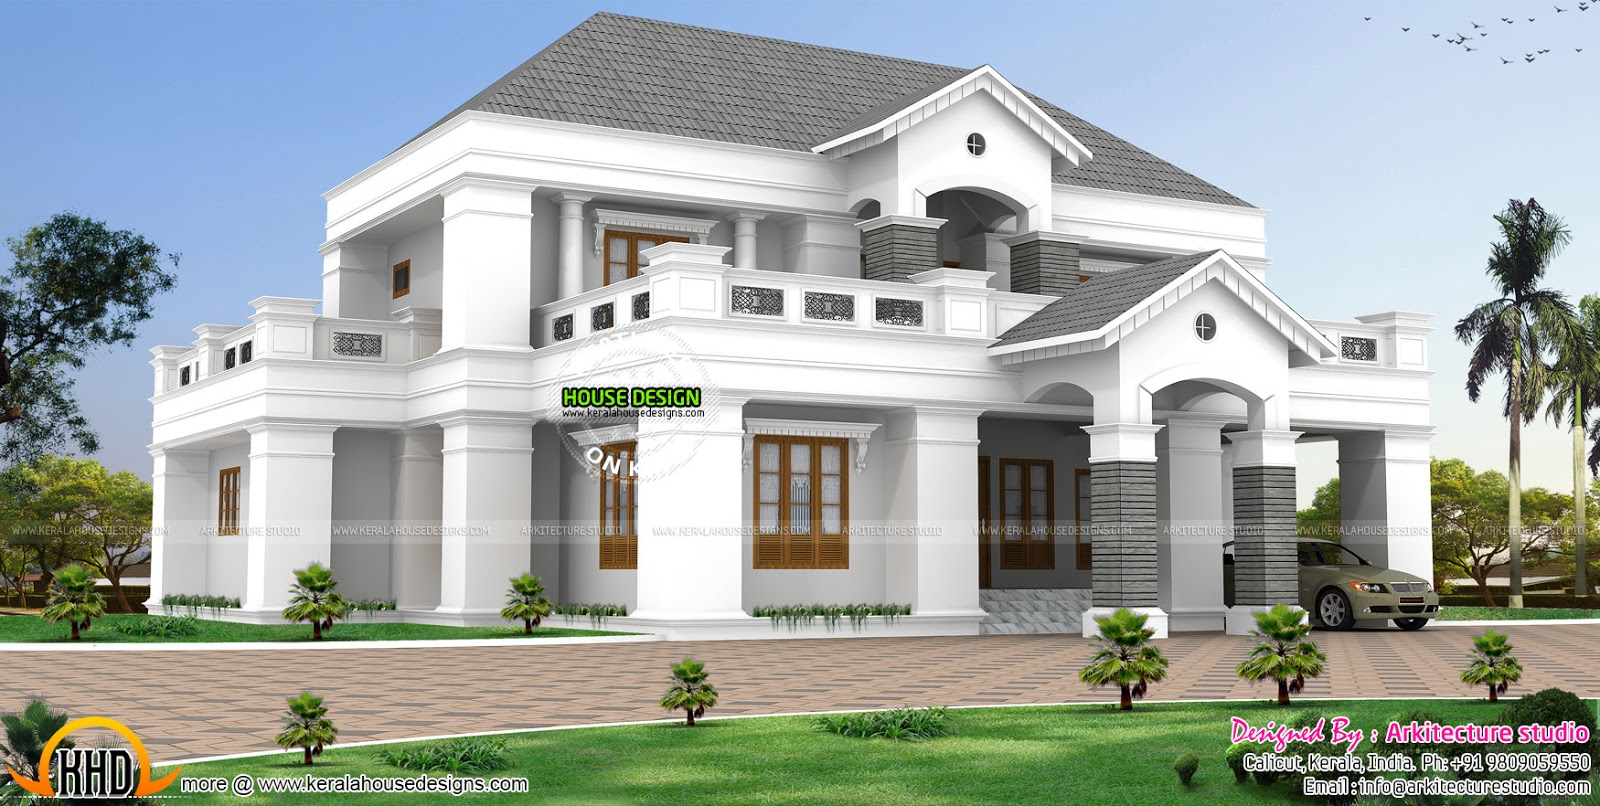 Luxurious pillar type home design kerala home design and for Colonial style home design in kerala